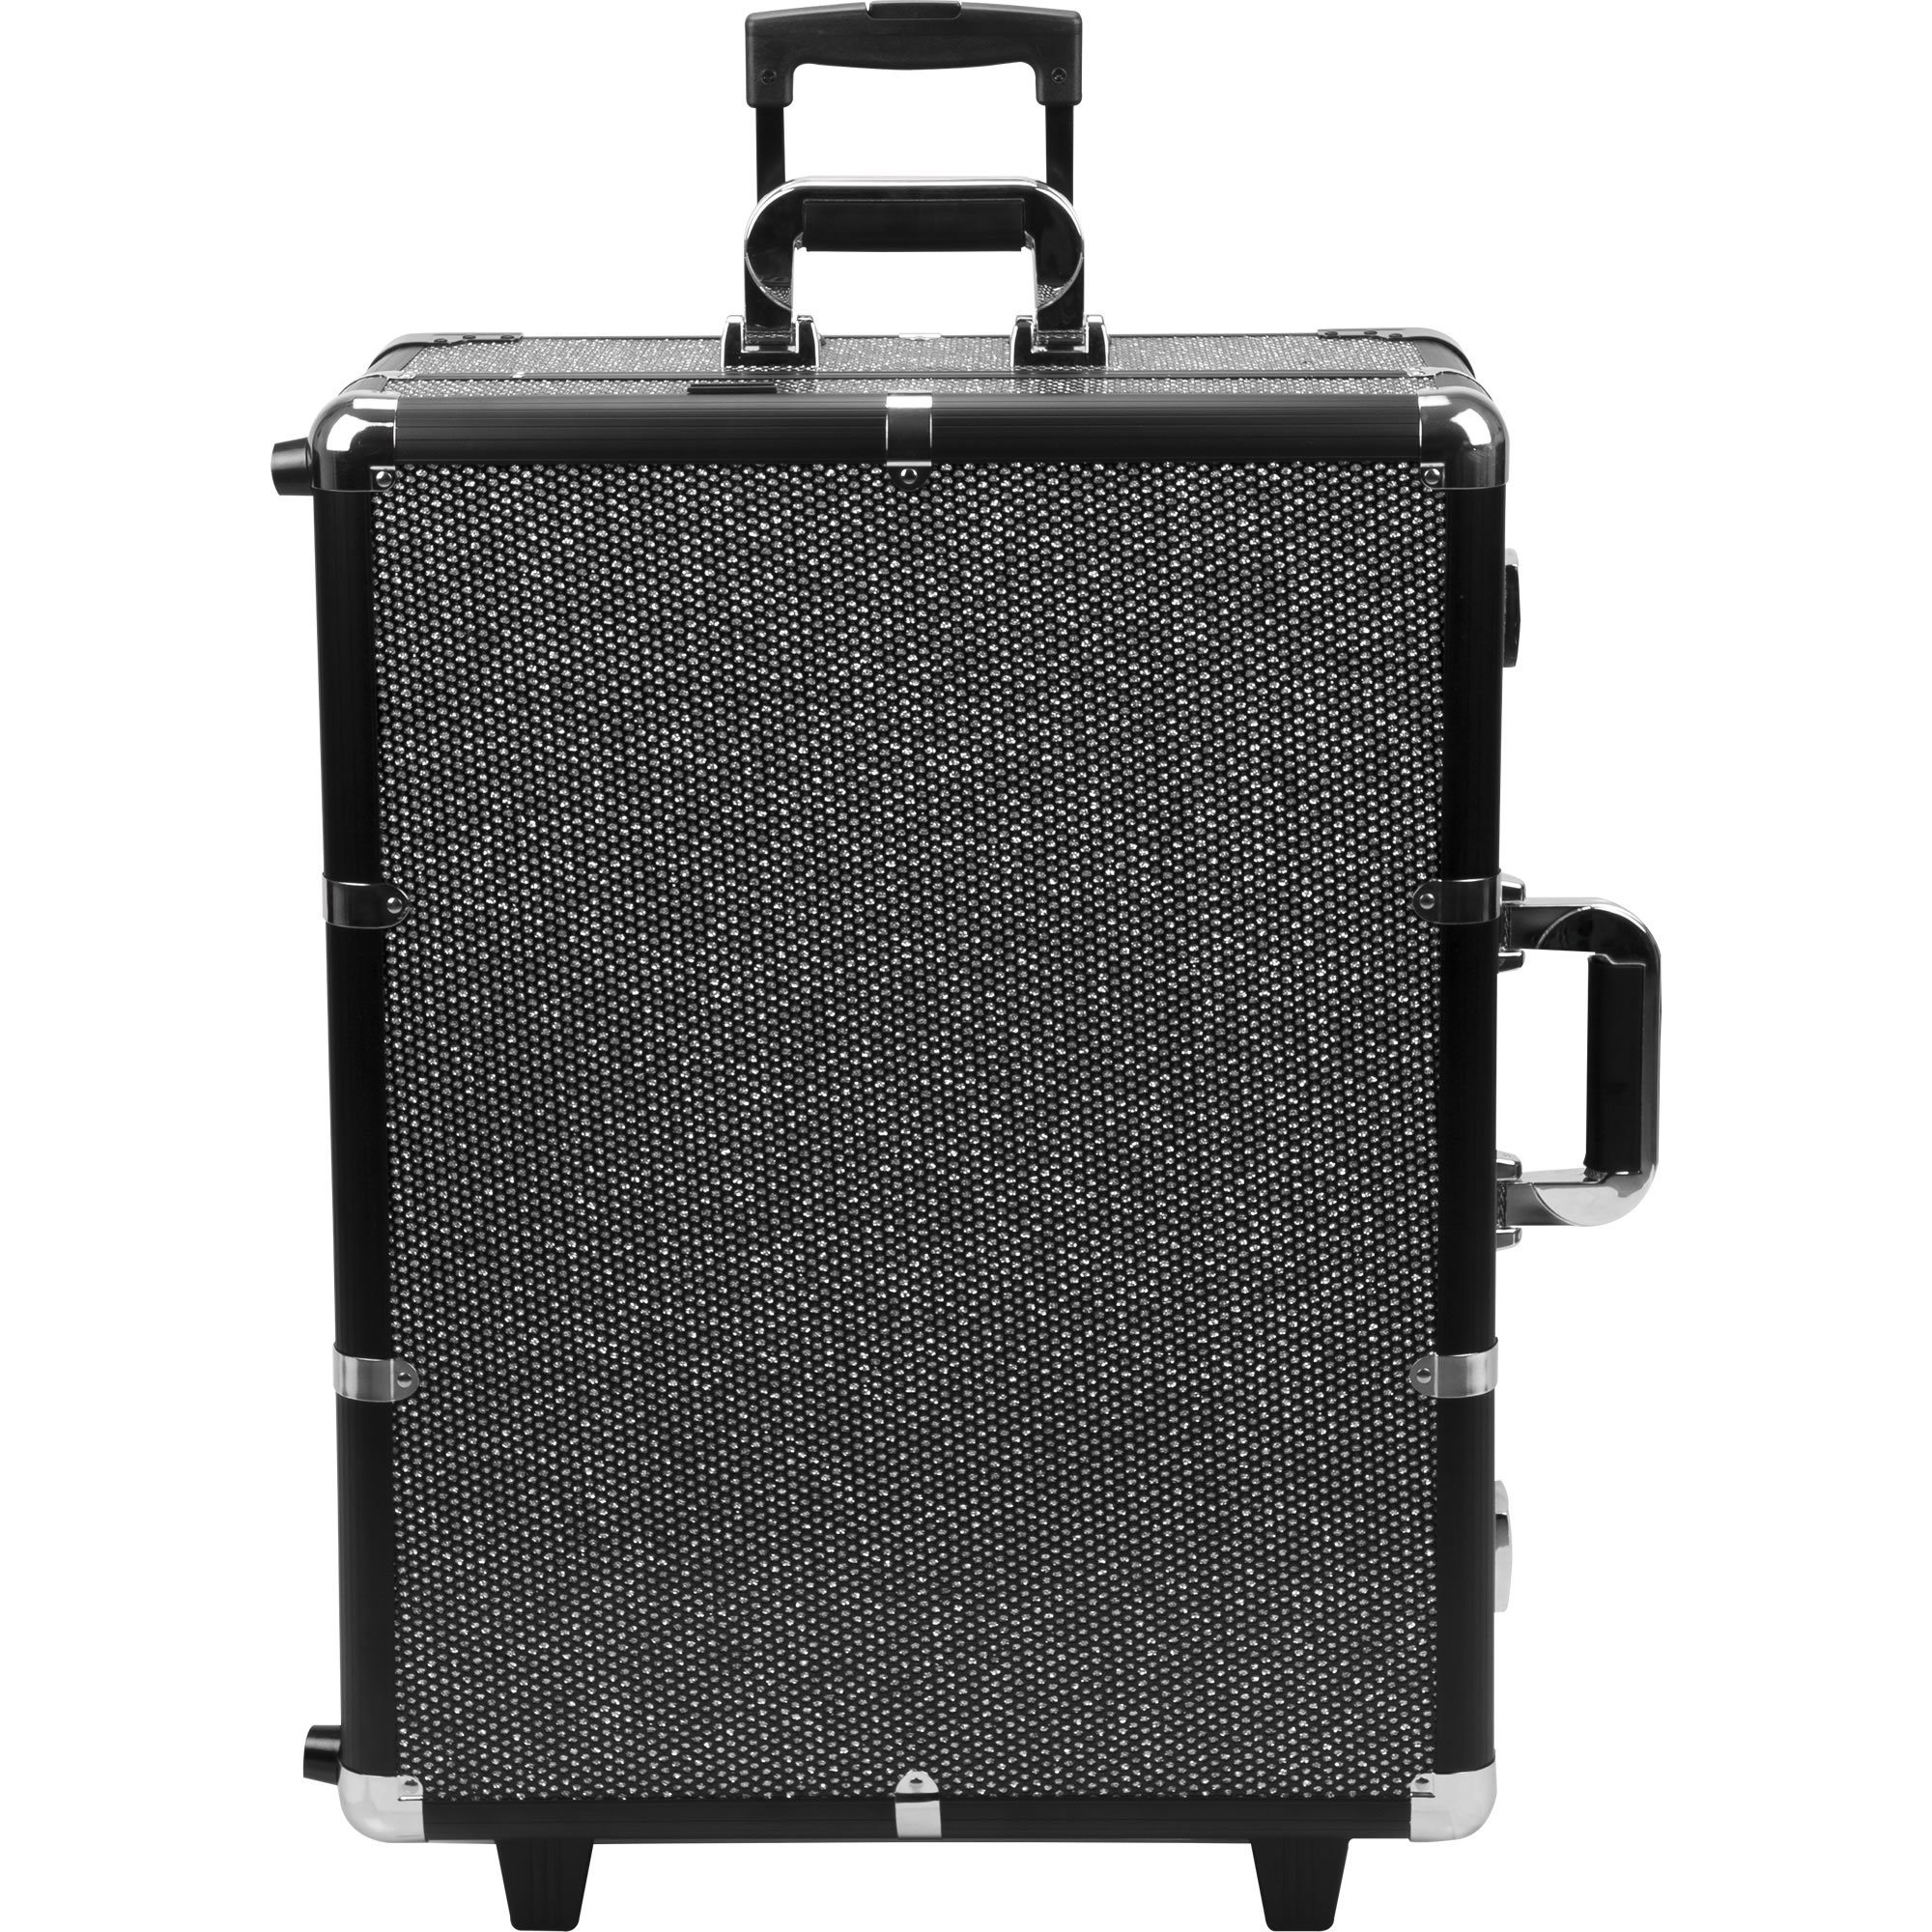 SUNRISE C6010 Lighted Makeup Case on Wheels, Portable Studio, 4 Trays and 1 Brush Tray, Dimmer Switch, Locking, Black Krystal